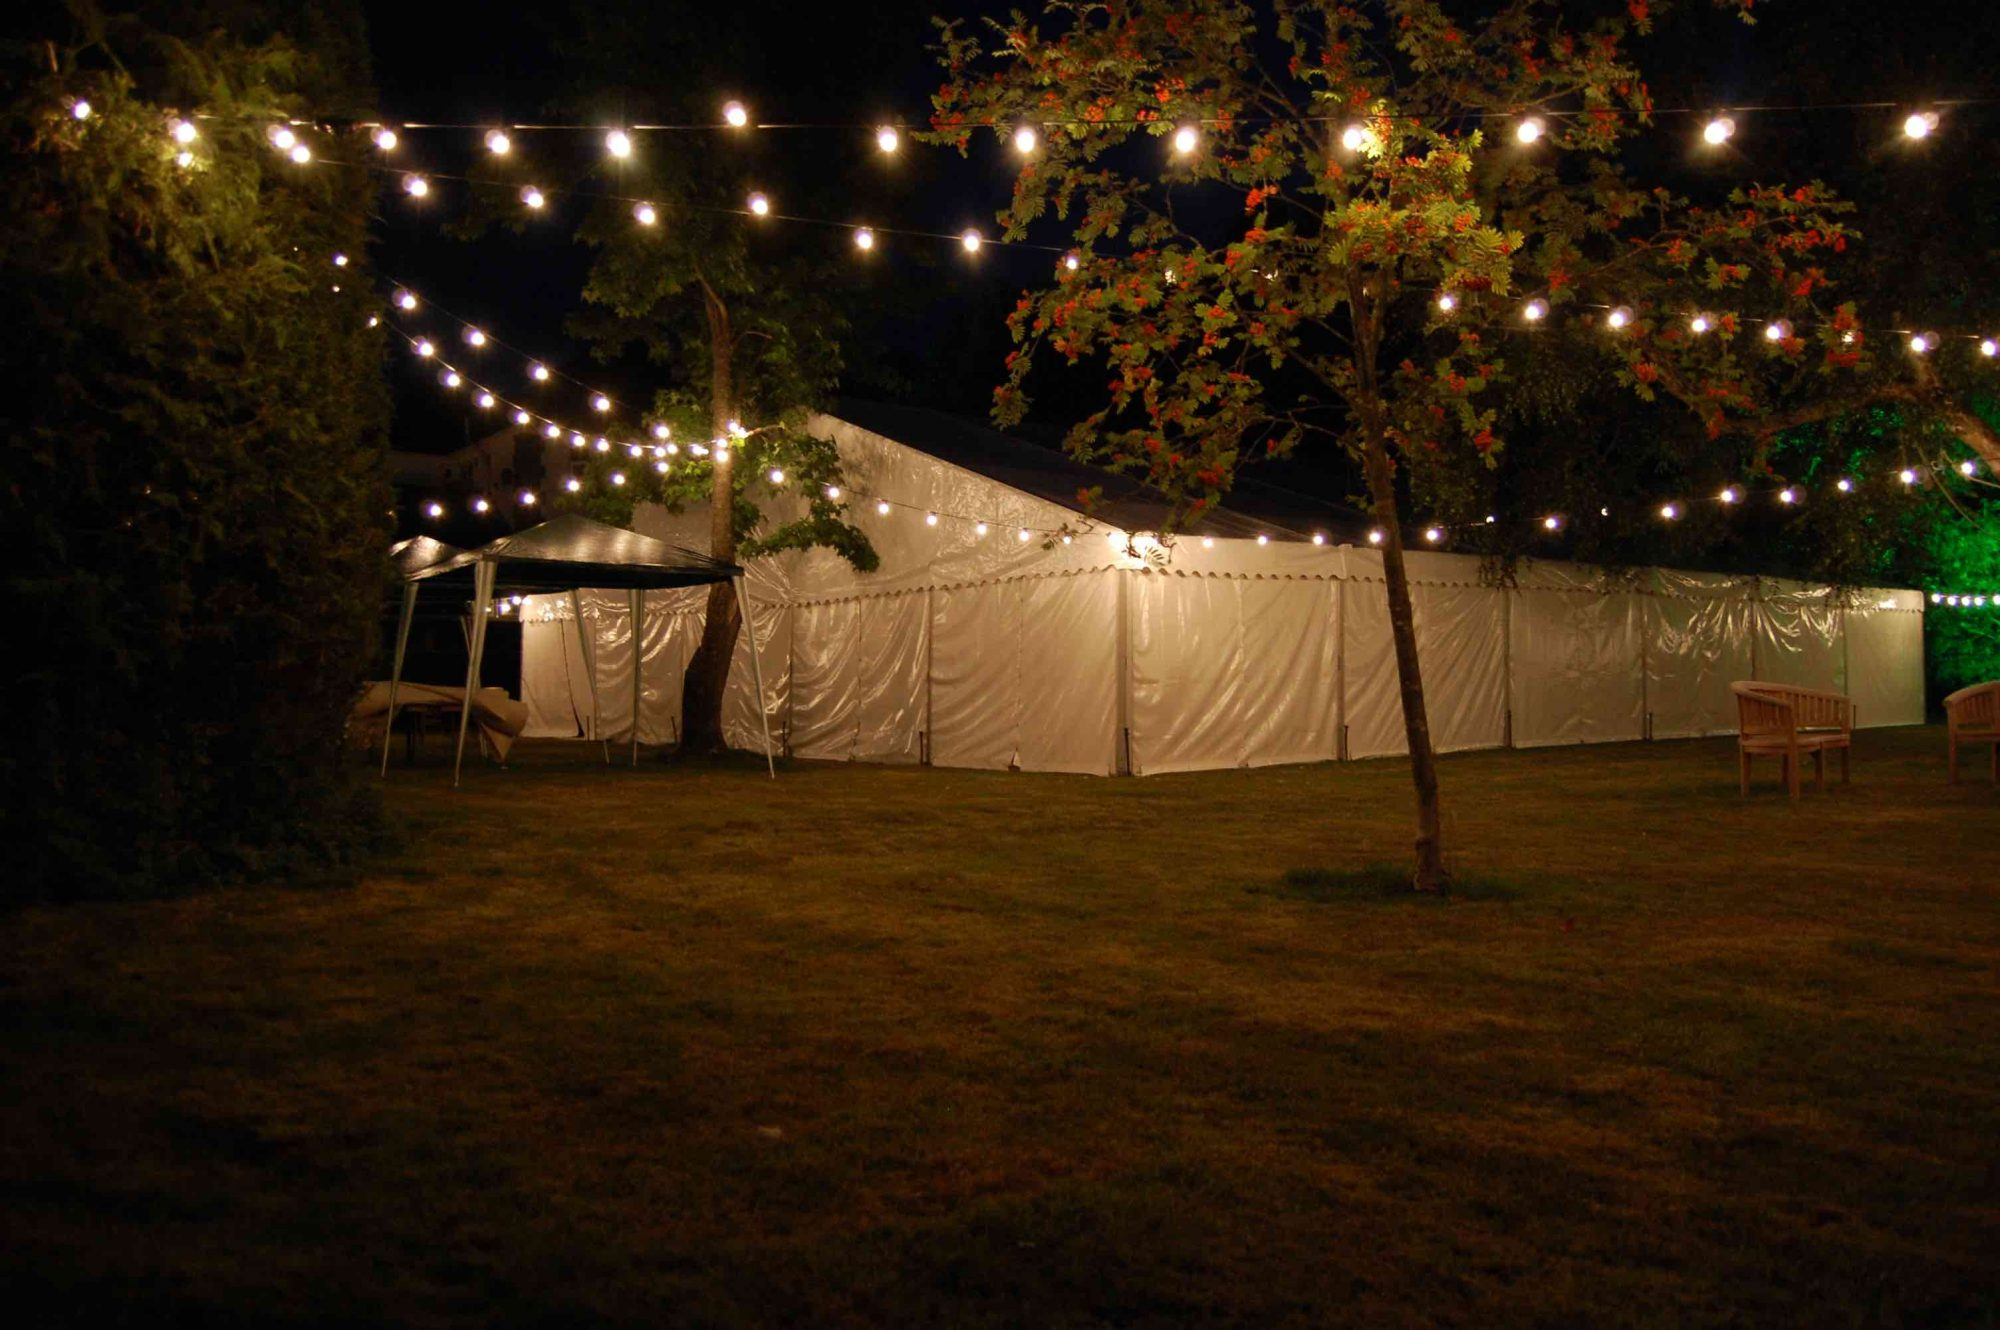 Decorative Festoon Lighting